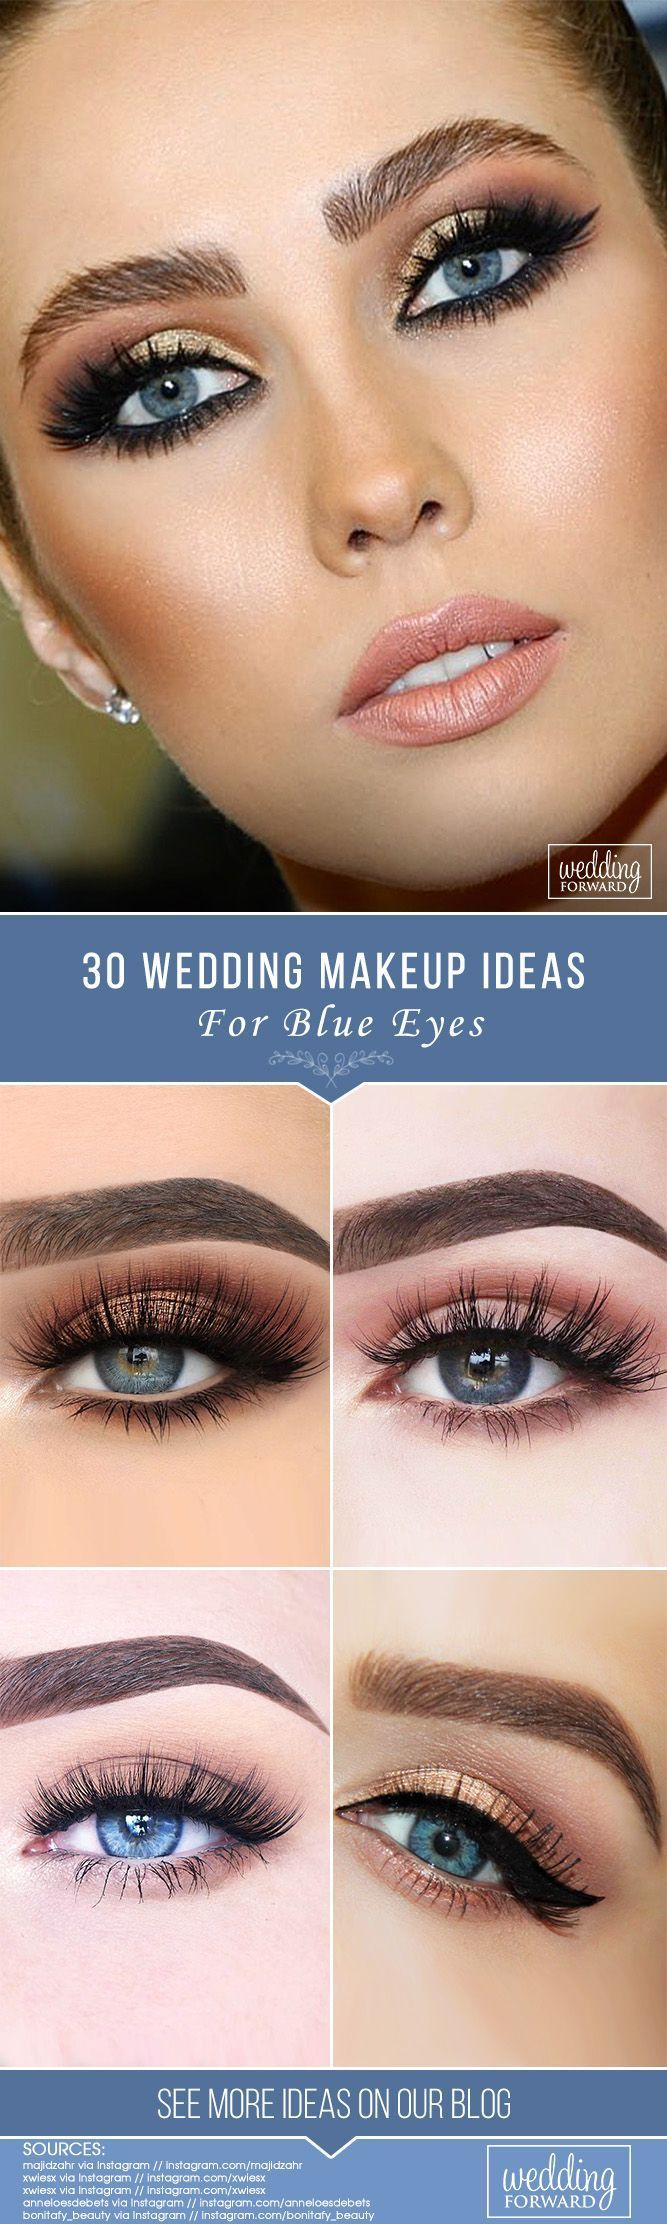 30 Makeup Ideas For Blue Eyes We have collected stunning